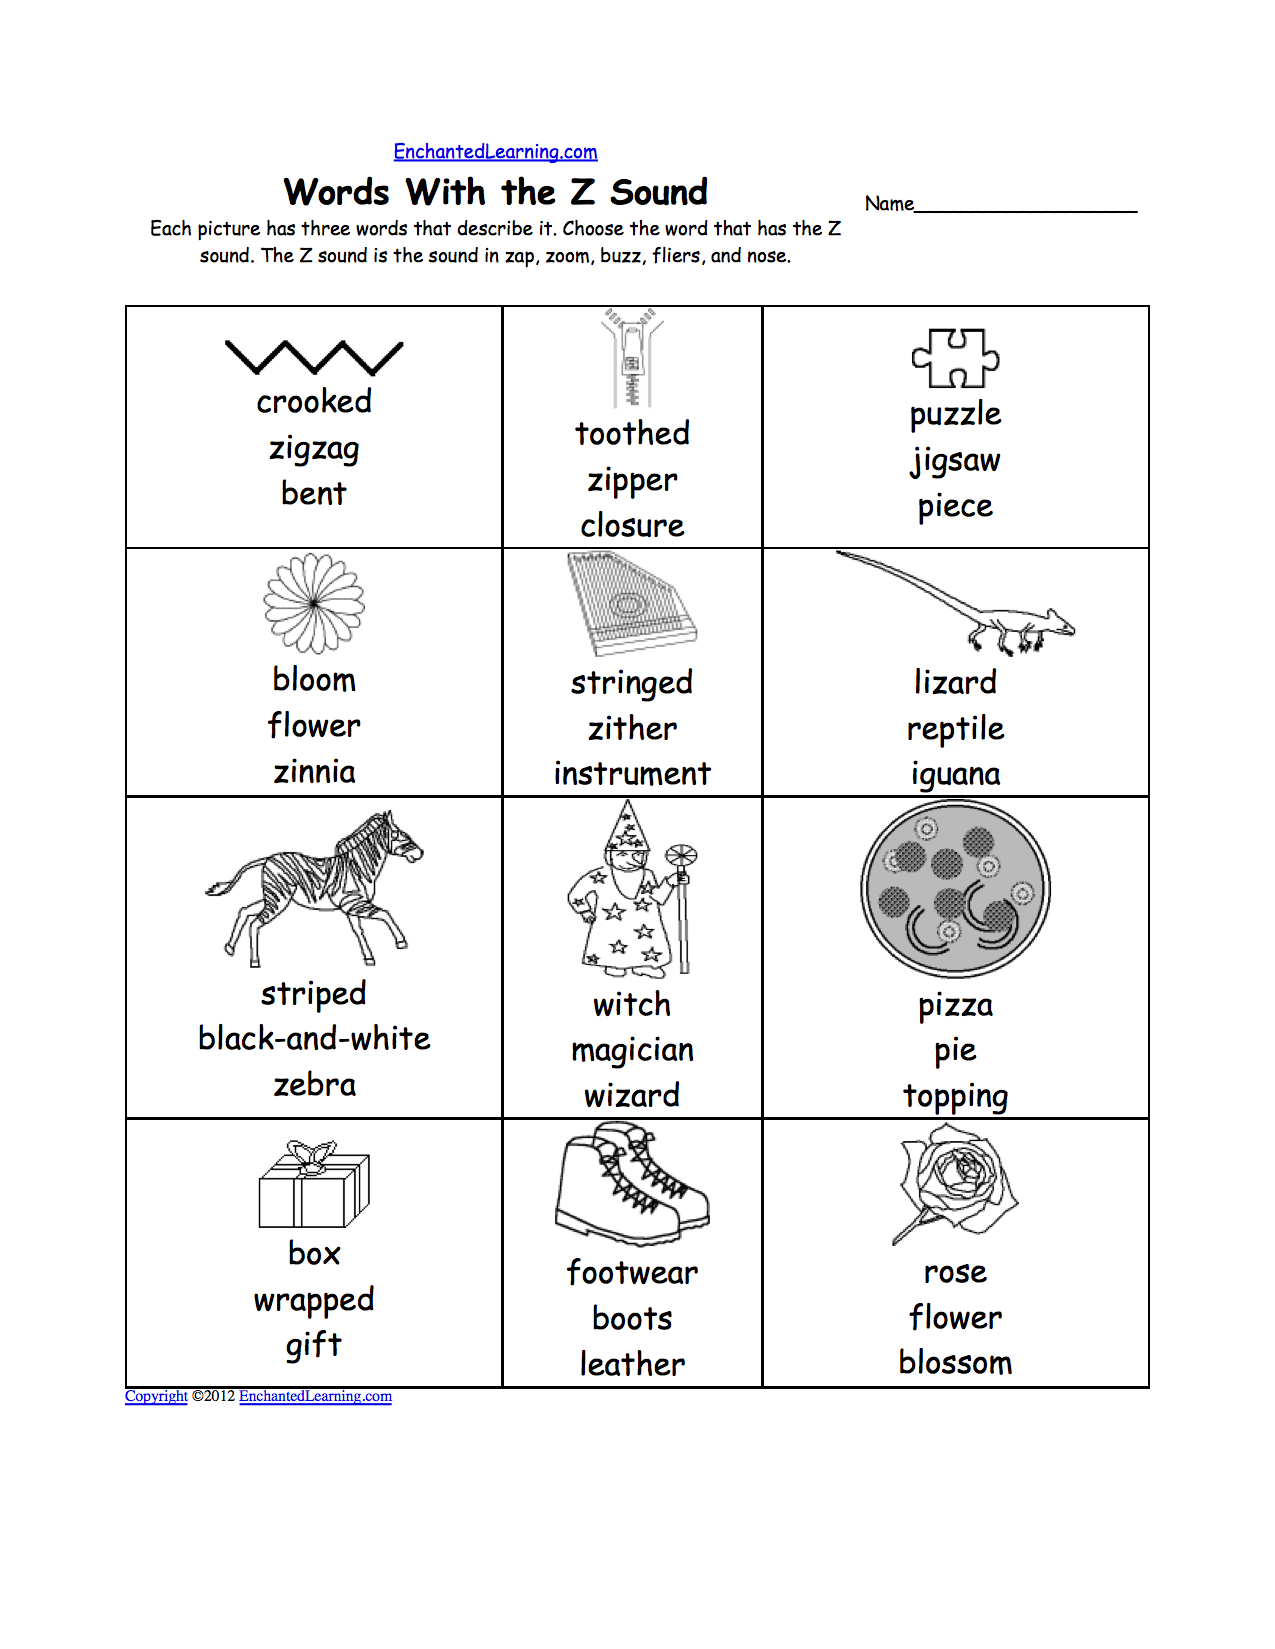 Weirdmailus  Marvellous Phonics Worksheets Multiple Choice Worksheets To Print  With Marvelous Phonics Worksheets Multiple Choice Worksheets To Print  Enchantedlearningcom With Agreeable Telling The Time Worksheets Year  Also Skeletal System Worksheet For Kids In Addition Herbivores Carnivores And Omnivores Worksheets And Free Printable Science Worksheets For Th Grade As Well As Number Sense Worksheets Nd Grade Additionally Fractions To Decimal Worksheets From Enchantedlearningcom With Weirdmailus  Marvelous Phonics Worksheets Multiple Choice Worksheets To Print  With Agreeable Phonics Worksheets Multiple Choice Worksheets To Print  Enchantedlearningcom And Marvellous Telling The Time Worksheets Year  Also Skeletal System Worksheet For Kids In Addition Herbivores Carnivores And Omnivores Worksheets From Enchantedlearningcom